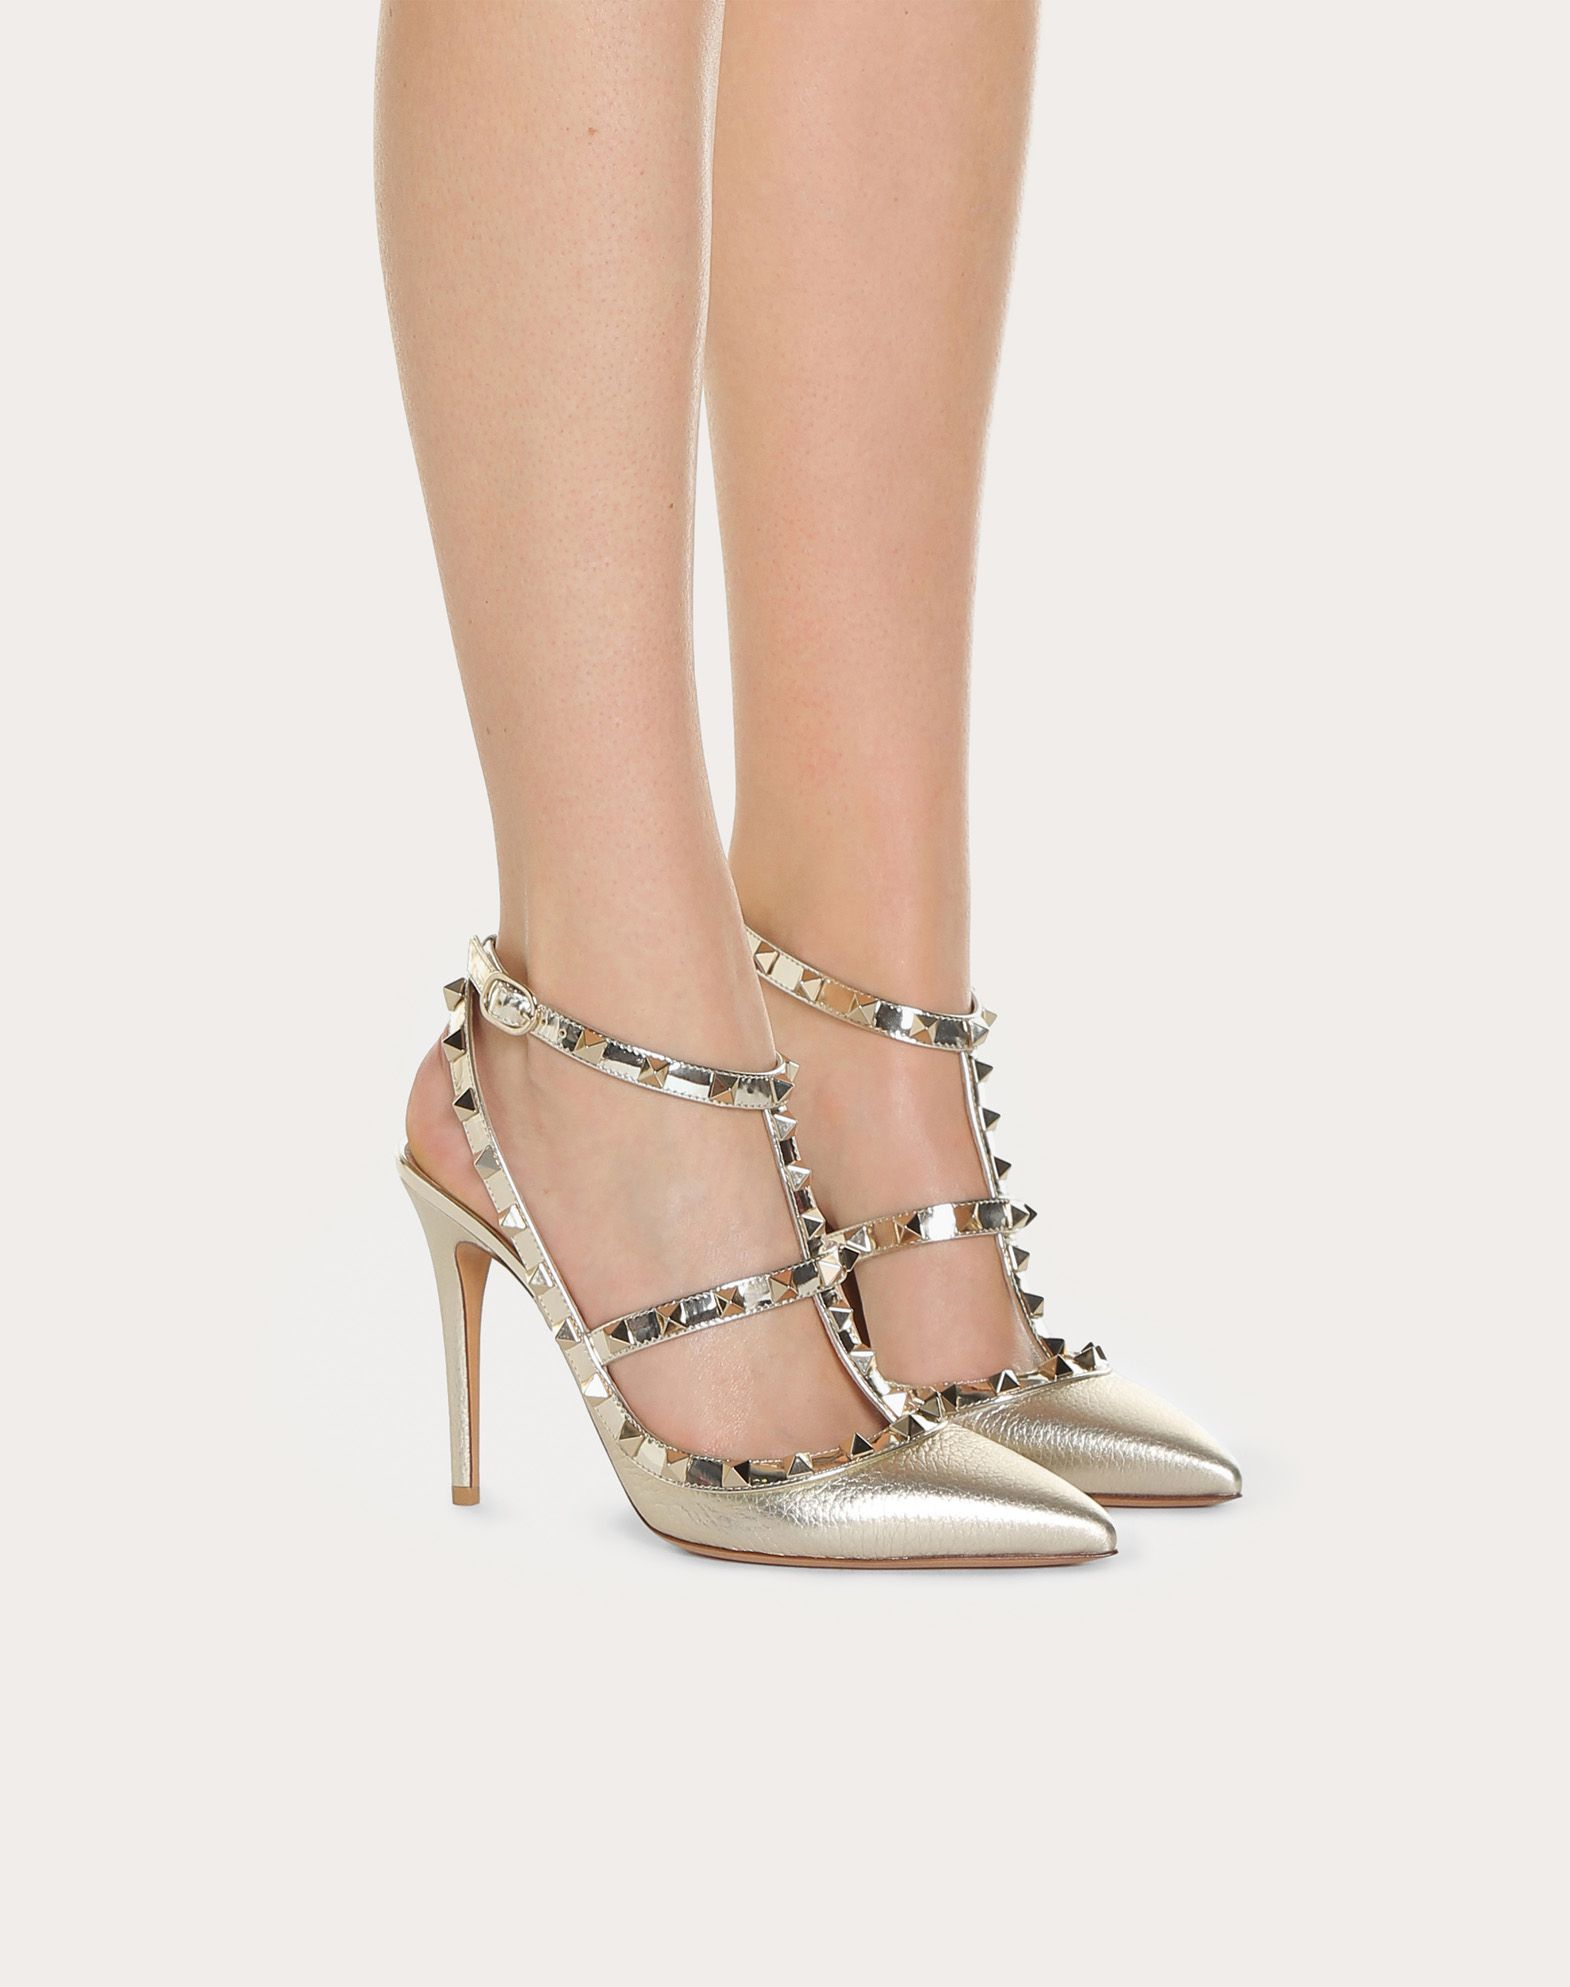 VALENTINO Spike heel Laminated effect Textured leather Studded Buckling ankle strap closure Narrow toeline Leather lining Leather sole  45400060xa